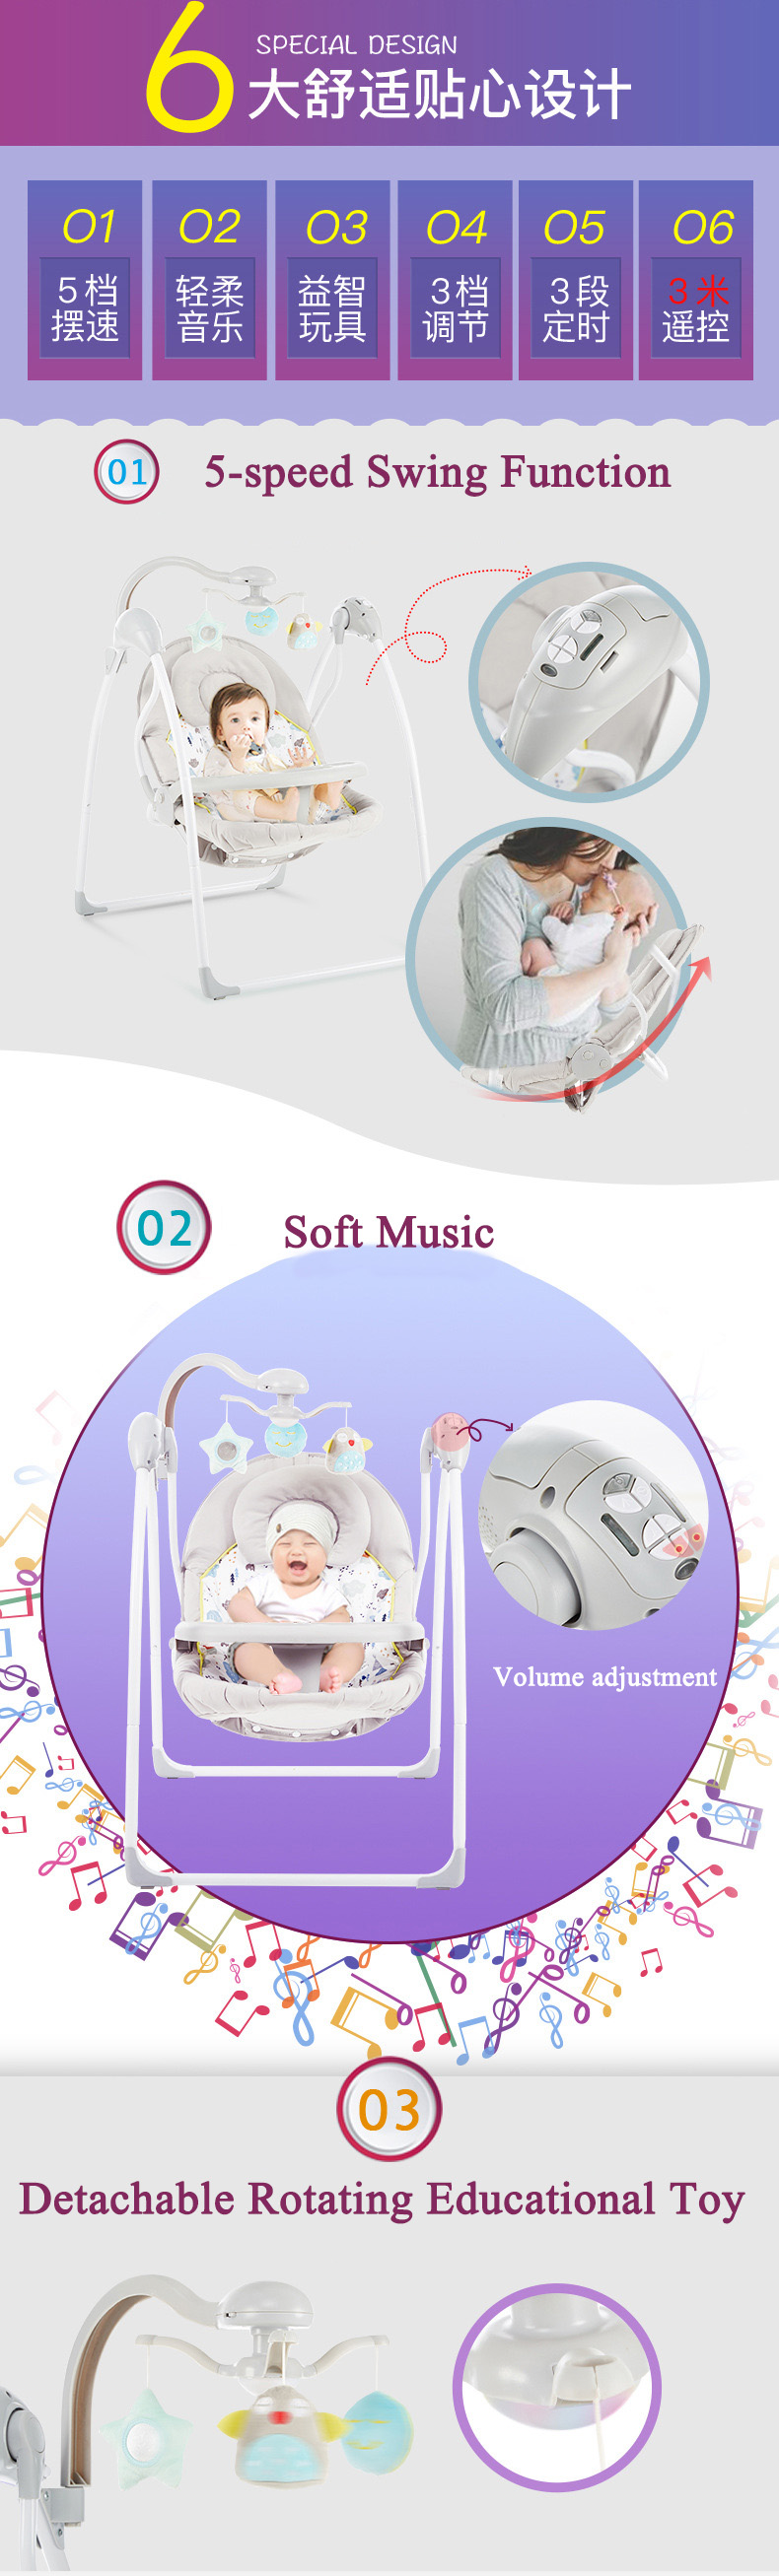 Hf96203932ca84522aedc440bc61b12cd0 Babyinner Baby Rocking Chair Baby Bassinet Newborn Electric Cradle Foldable Baby Chair Multifunctional Swing Baby Sleeping Bed